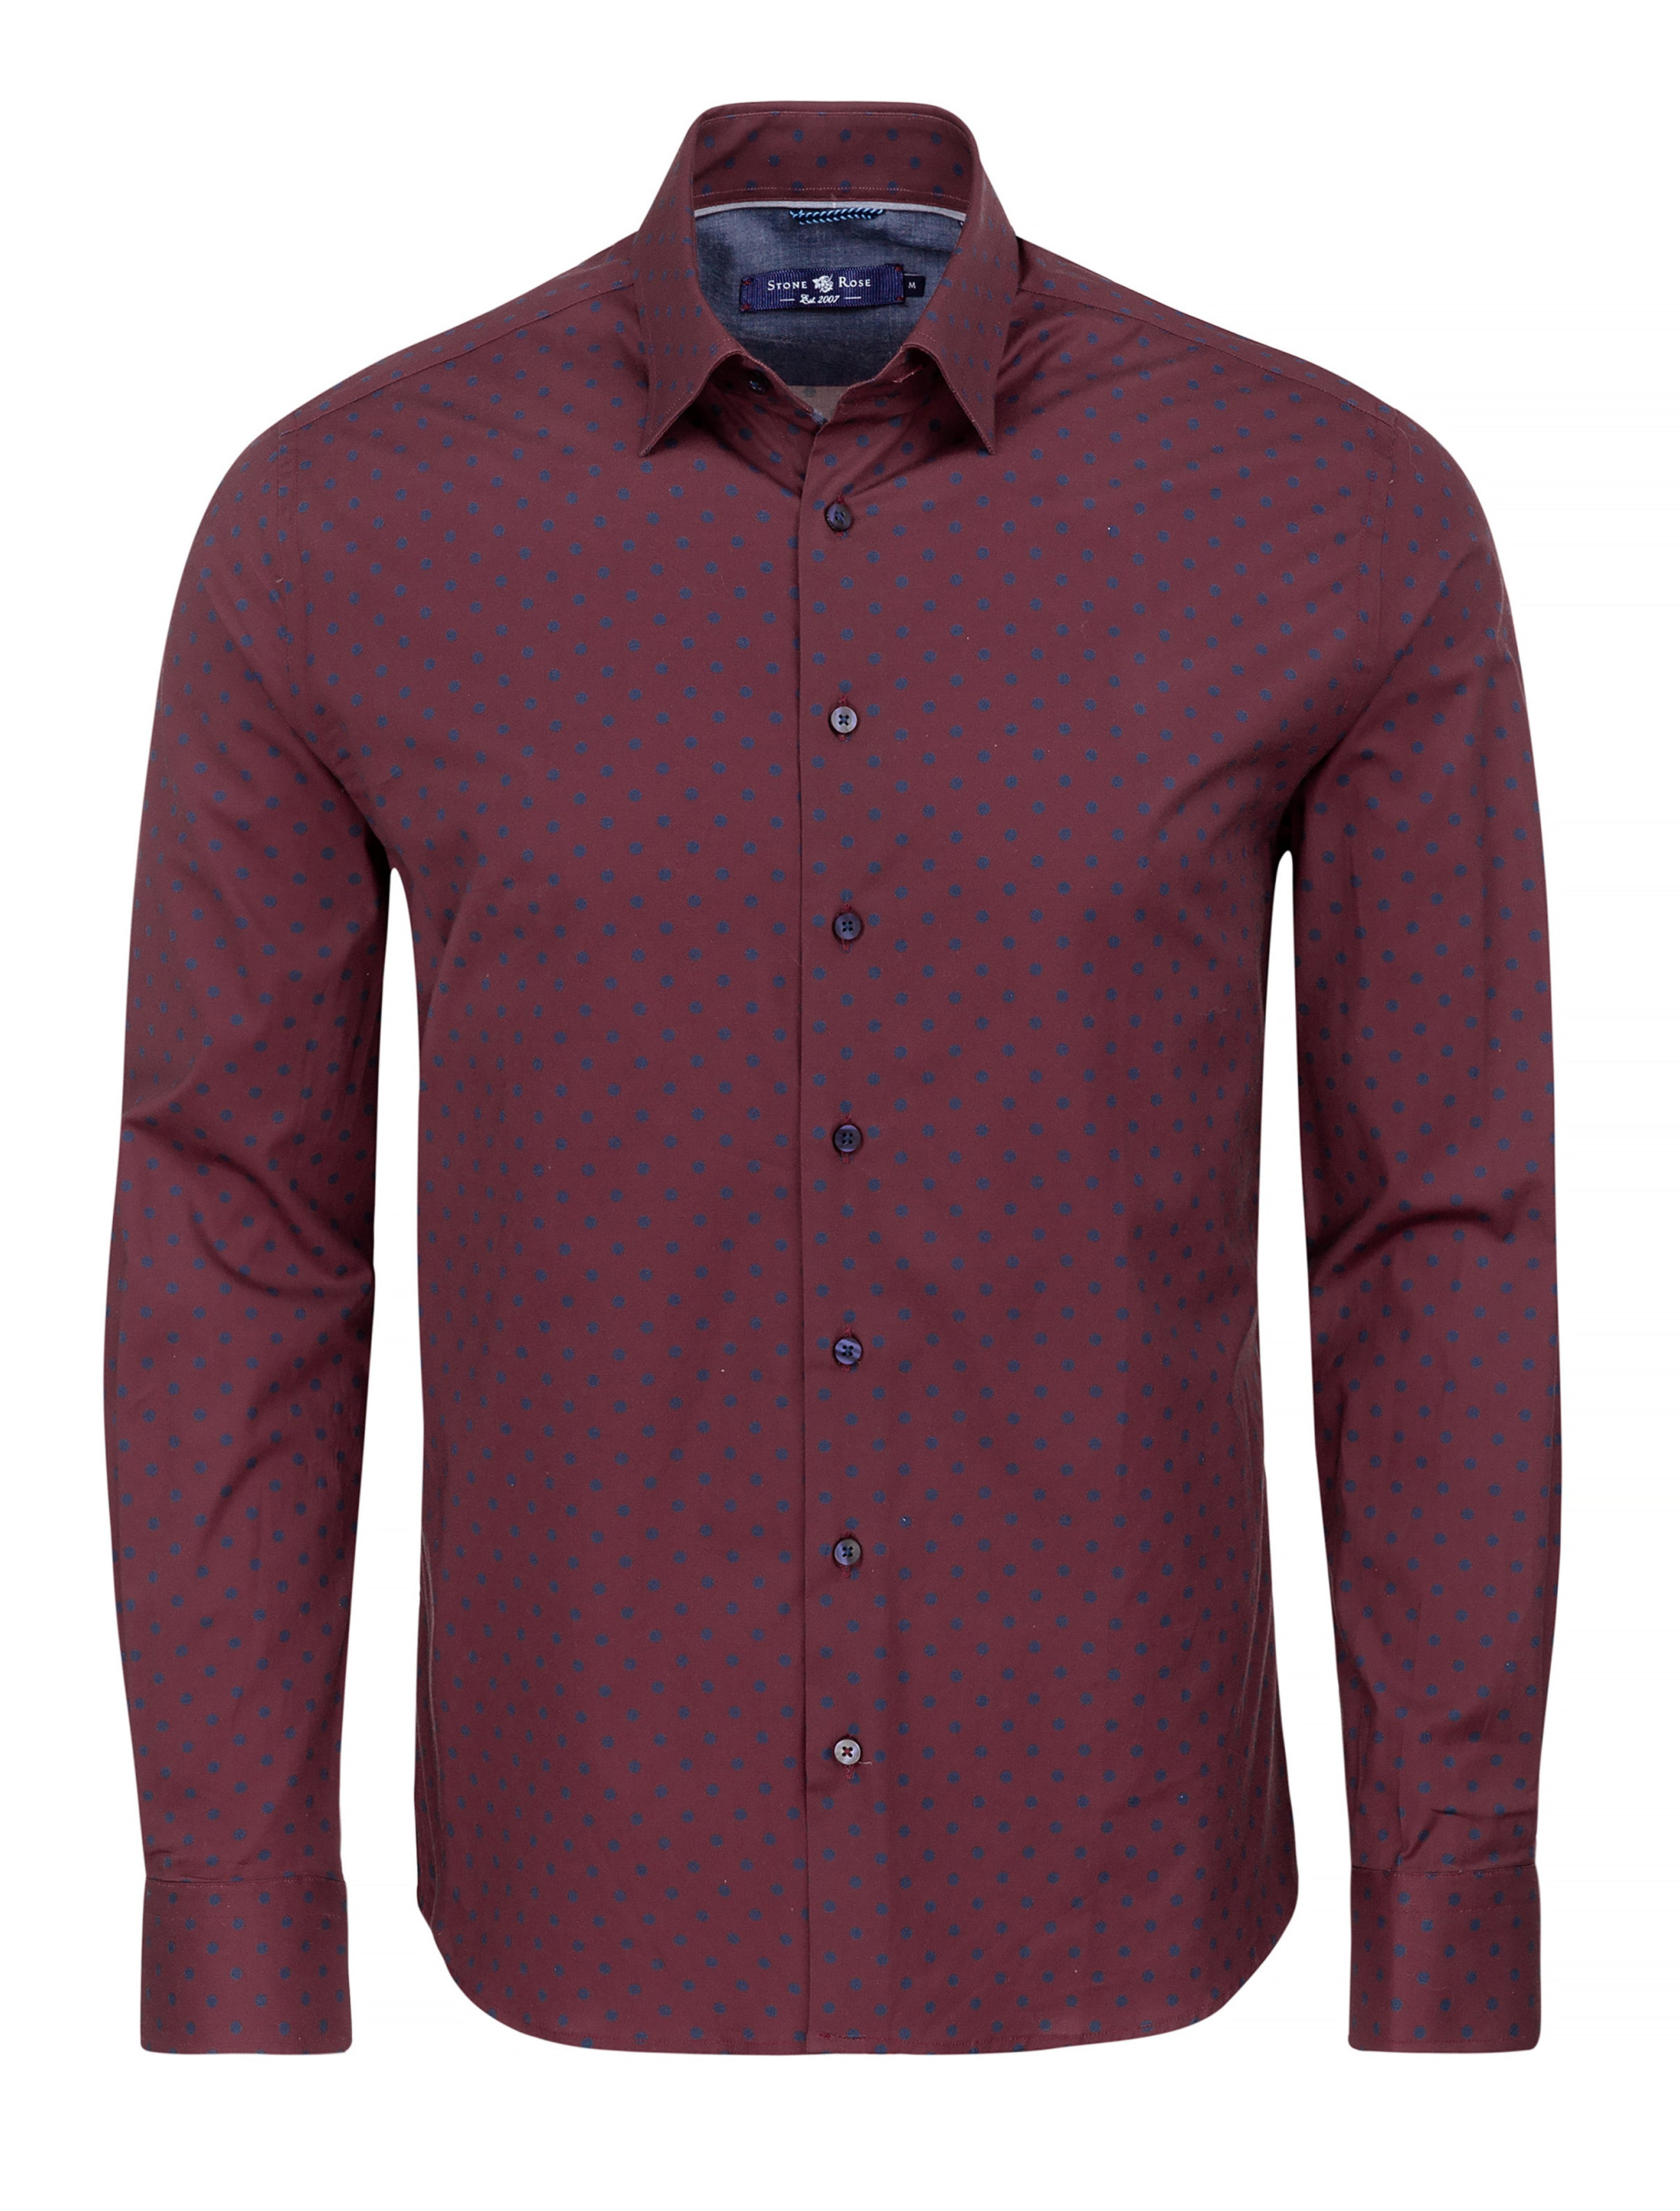 Burgundy Polka Dot Print Long Sleeve Shirt-Stone Rose